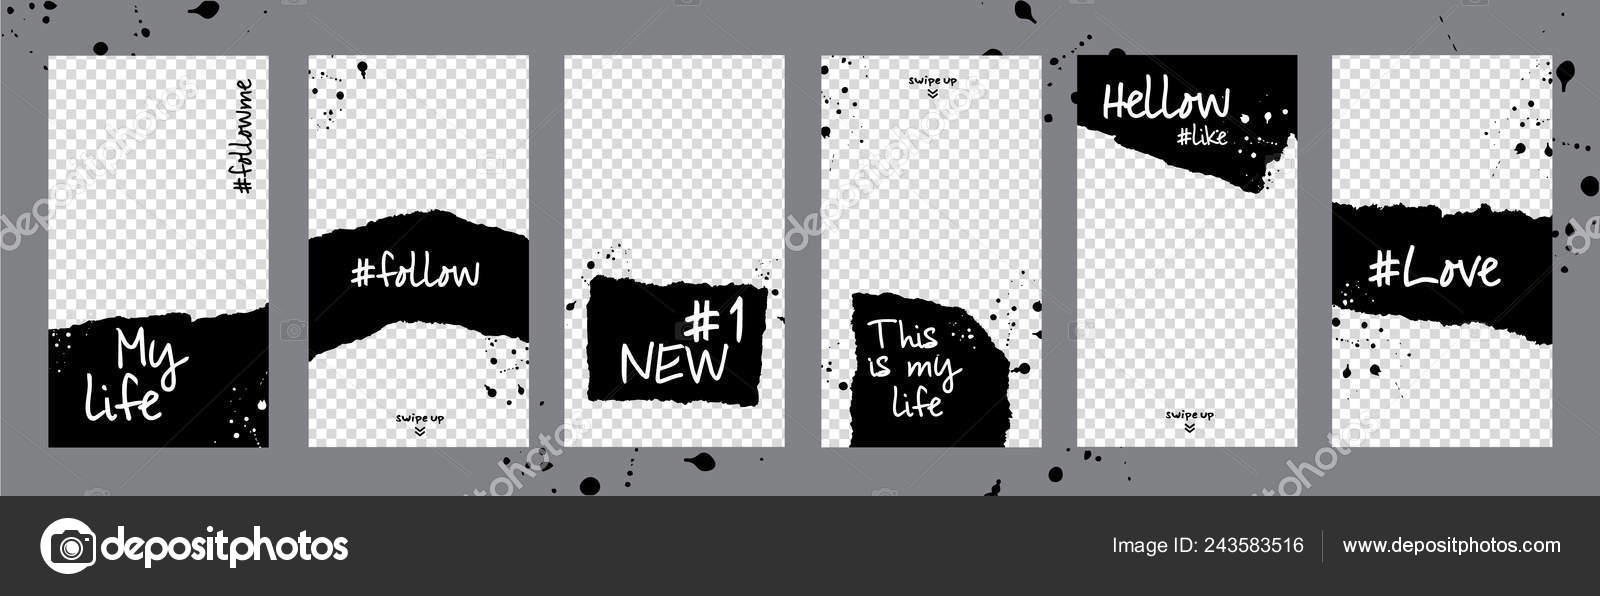 512eda819bb Set black and white photo frames. Mockup for photo isolated on transparent  background. Love. Like. Follow me. Editable torn paper design. Lifestyle  concept.